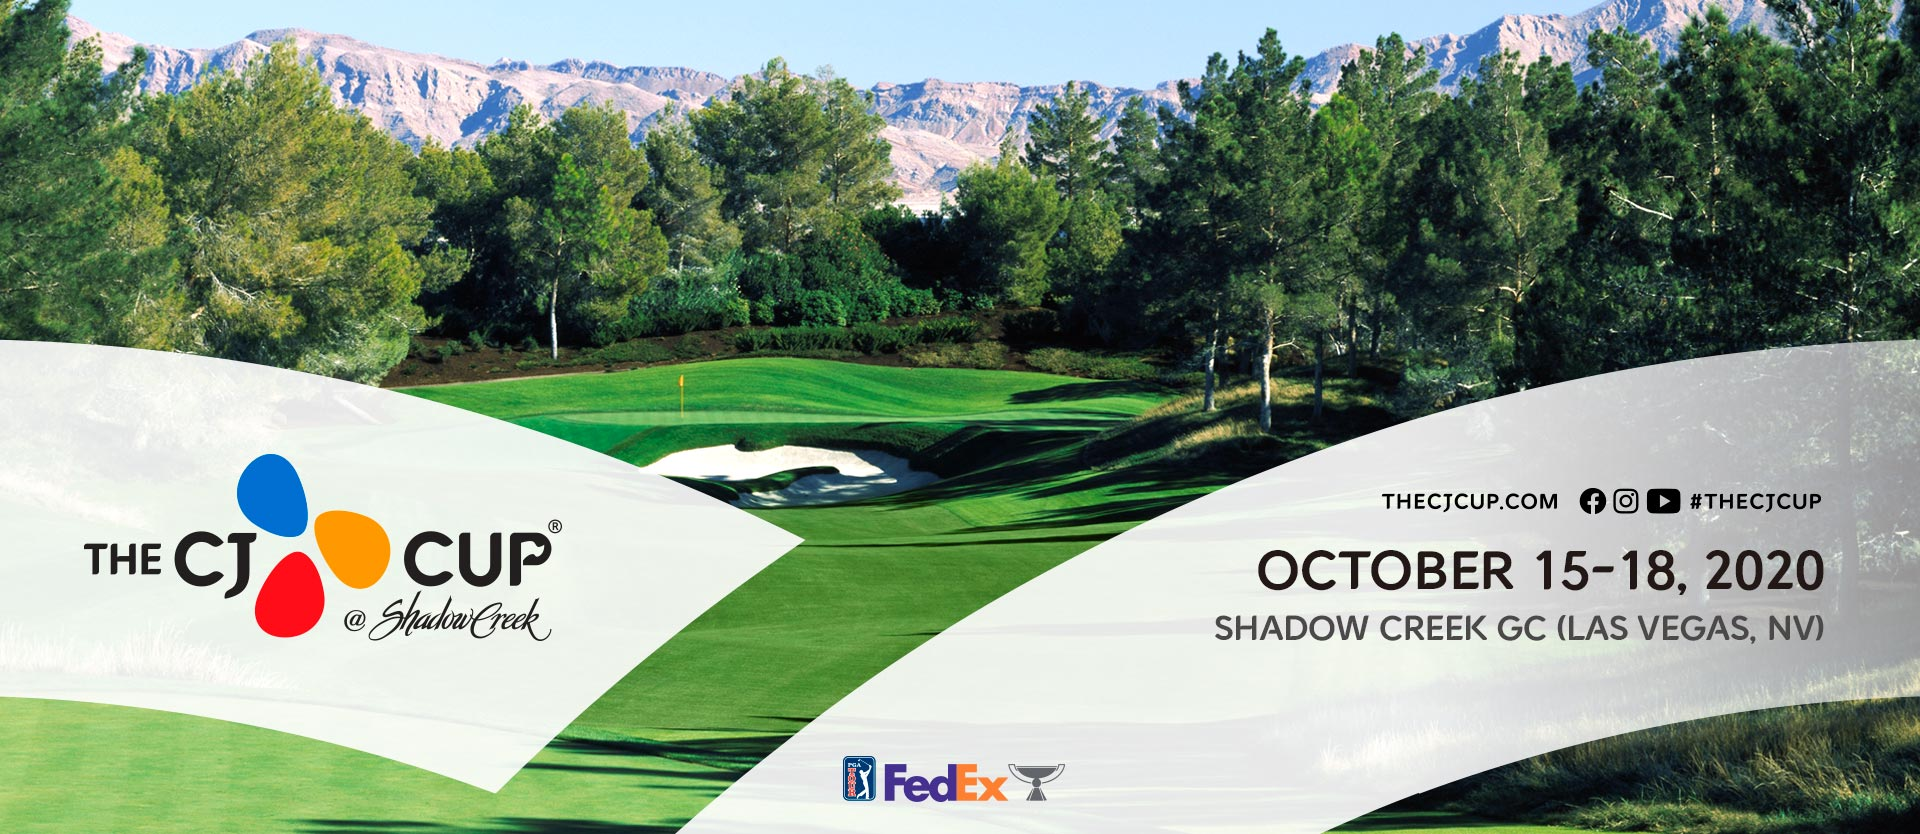 the cj cup SHADOW CREEK, NV, USA / OCTOVER 15-18, 2020 SHADOW CREEK, NV, USA